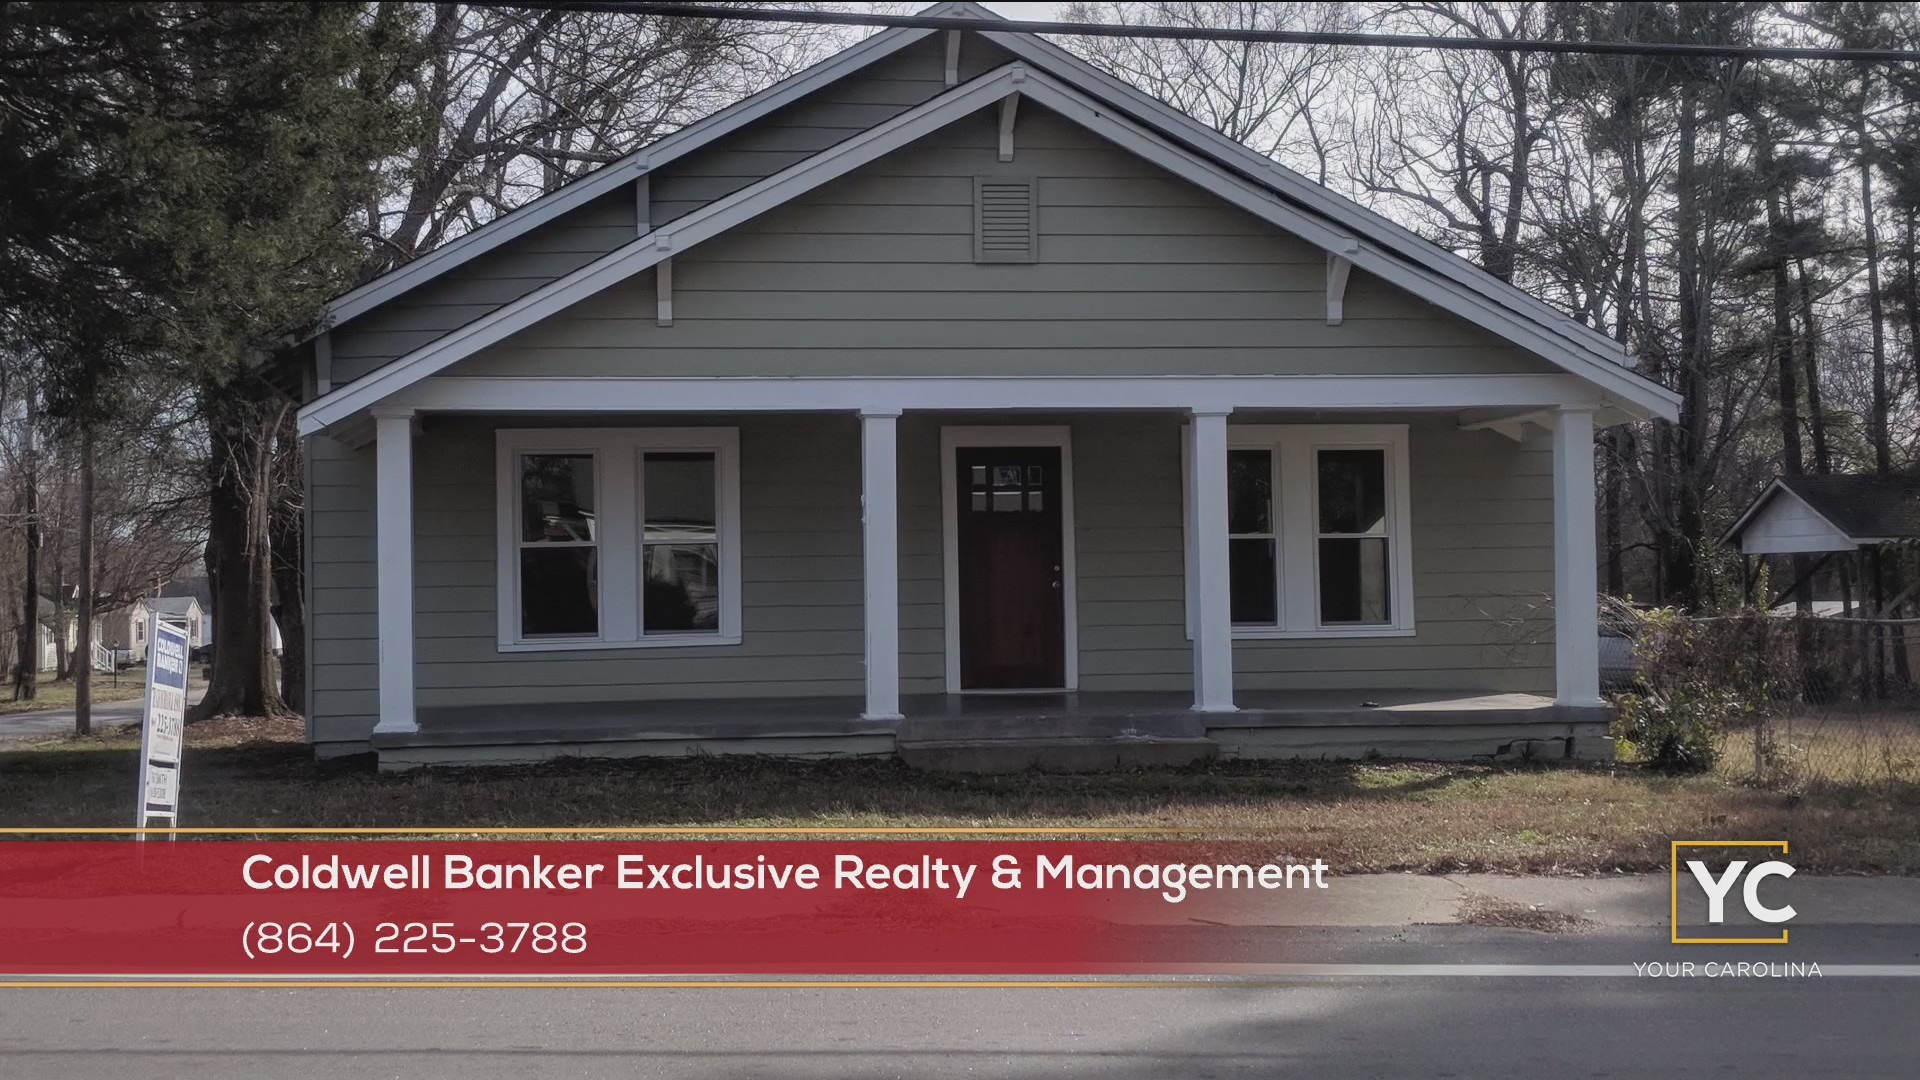 Coldwell Banker Exclusive Realty & Management Community Redevelopment Program